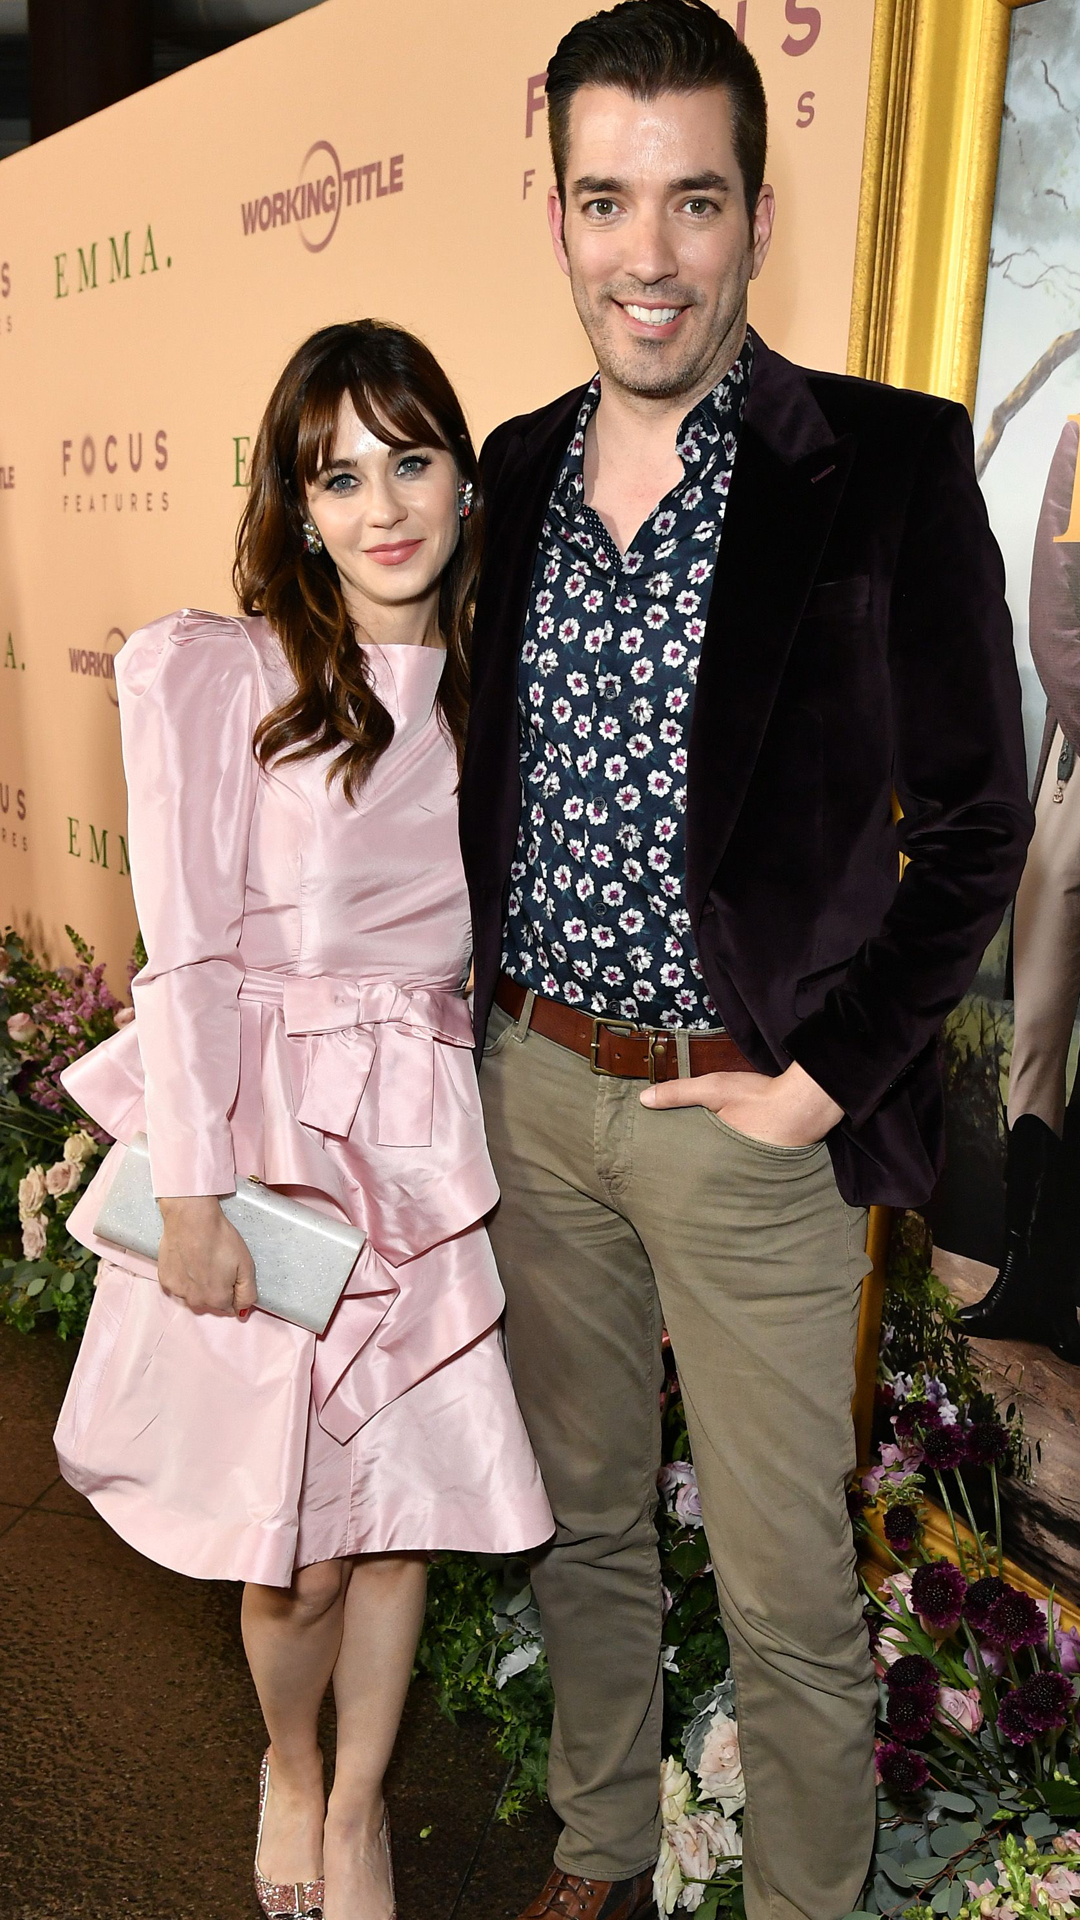 Zooey Deschanel & Jonathan Scott from The Big Picture: Today's Hot Photos